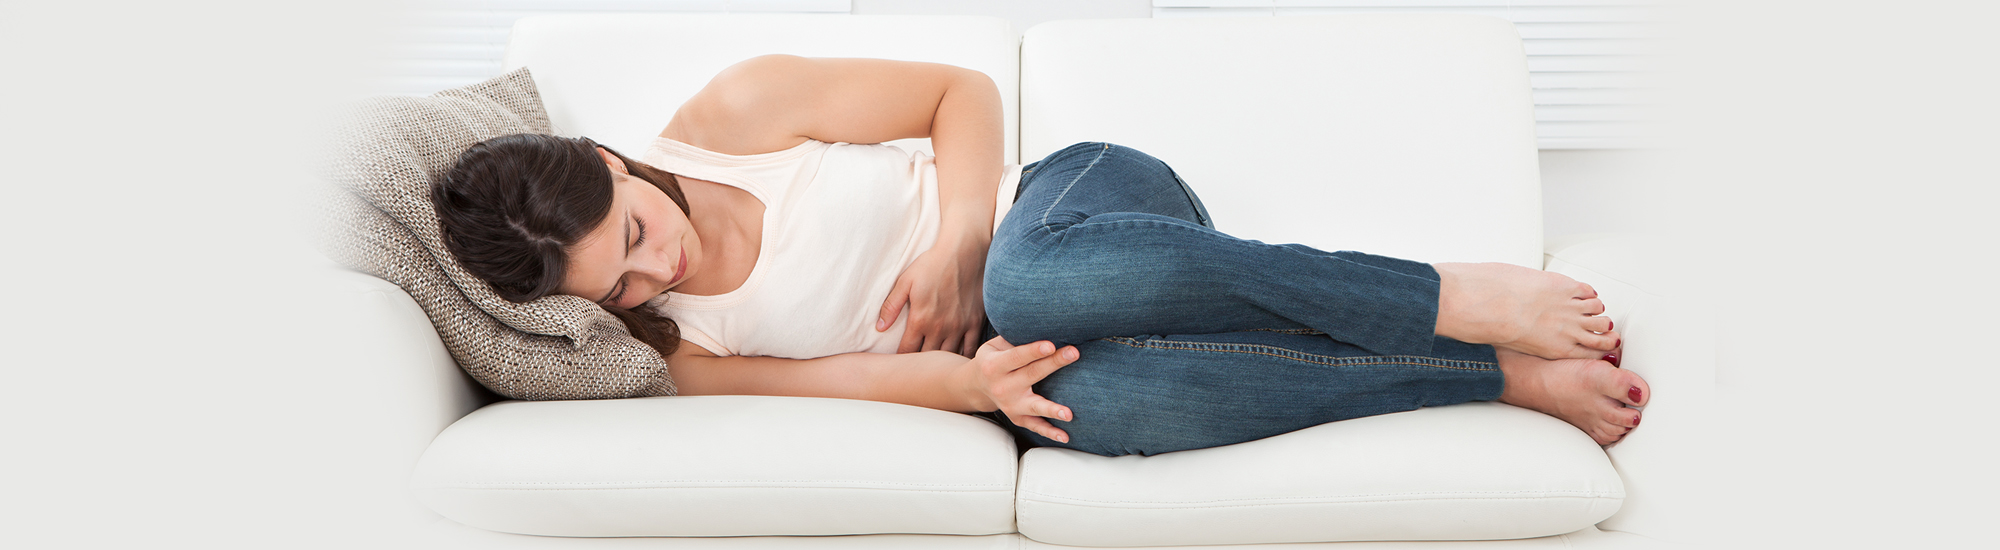 Ayurvedic treatment for Premenstrual syndrome -PMS- FAQs